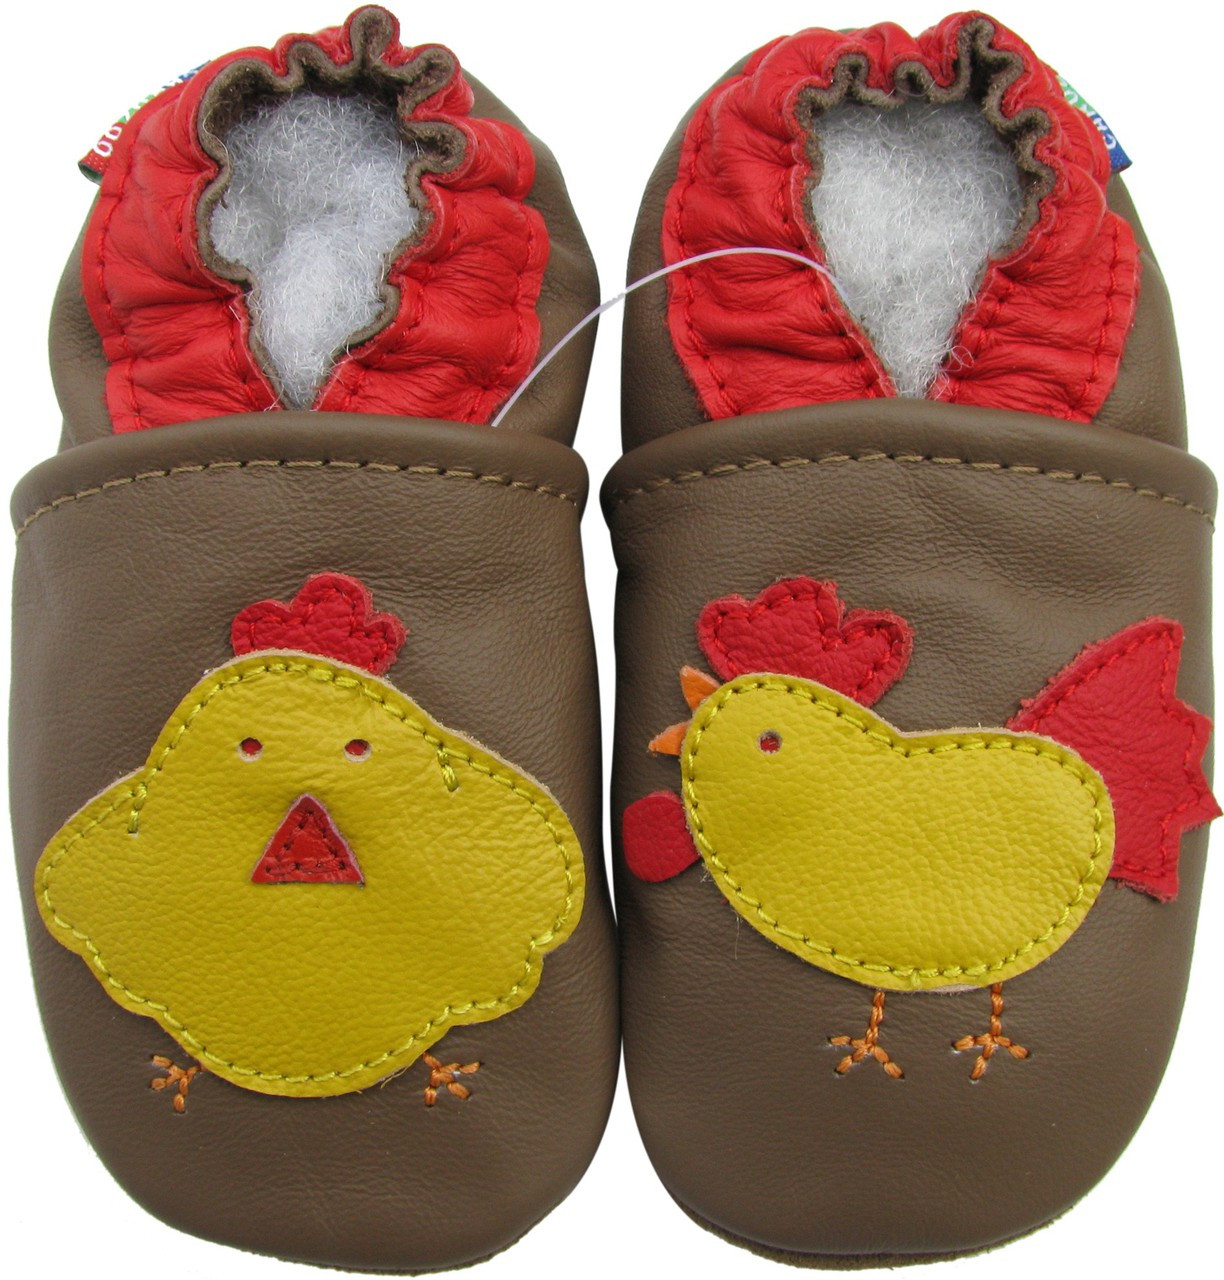 49fd85126ebf carozoo rooster hen brown 0-6m soft sole leather infant baby shoes -  Shoeszoo